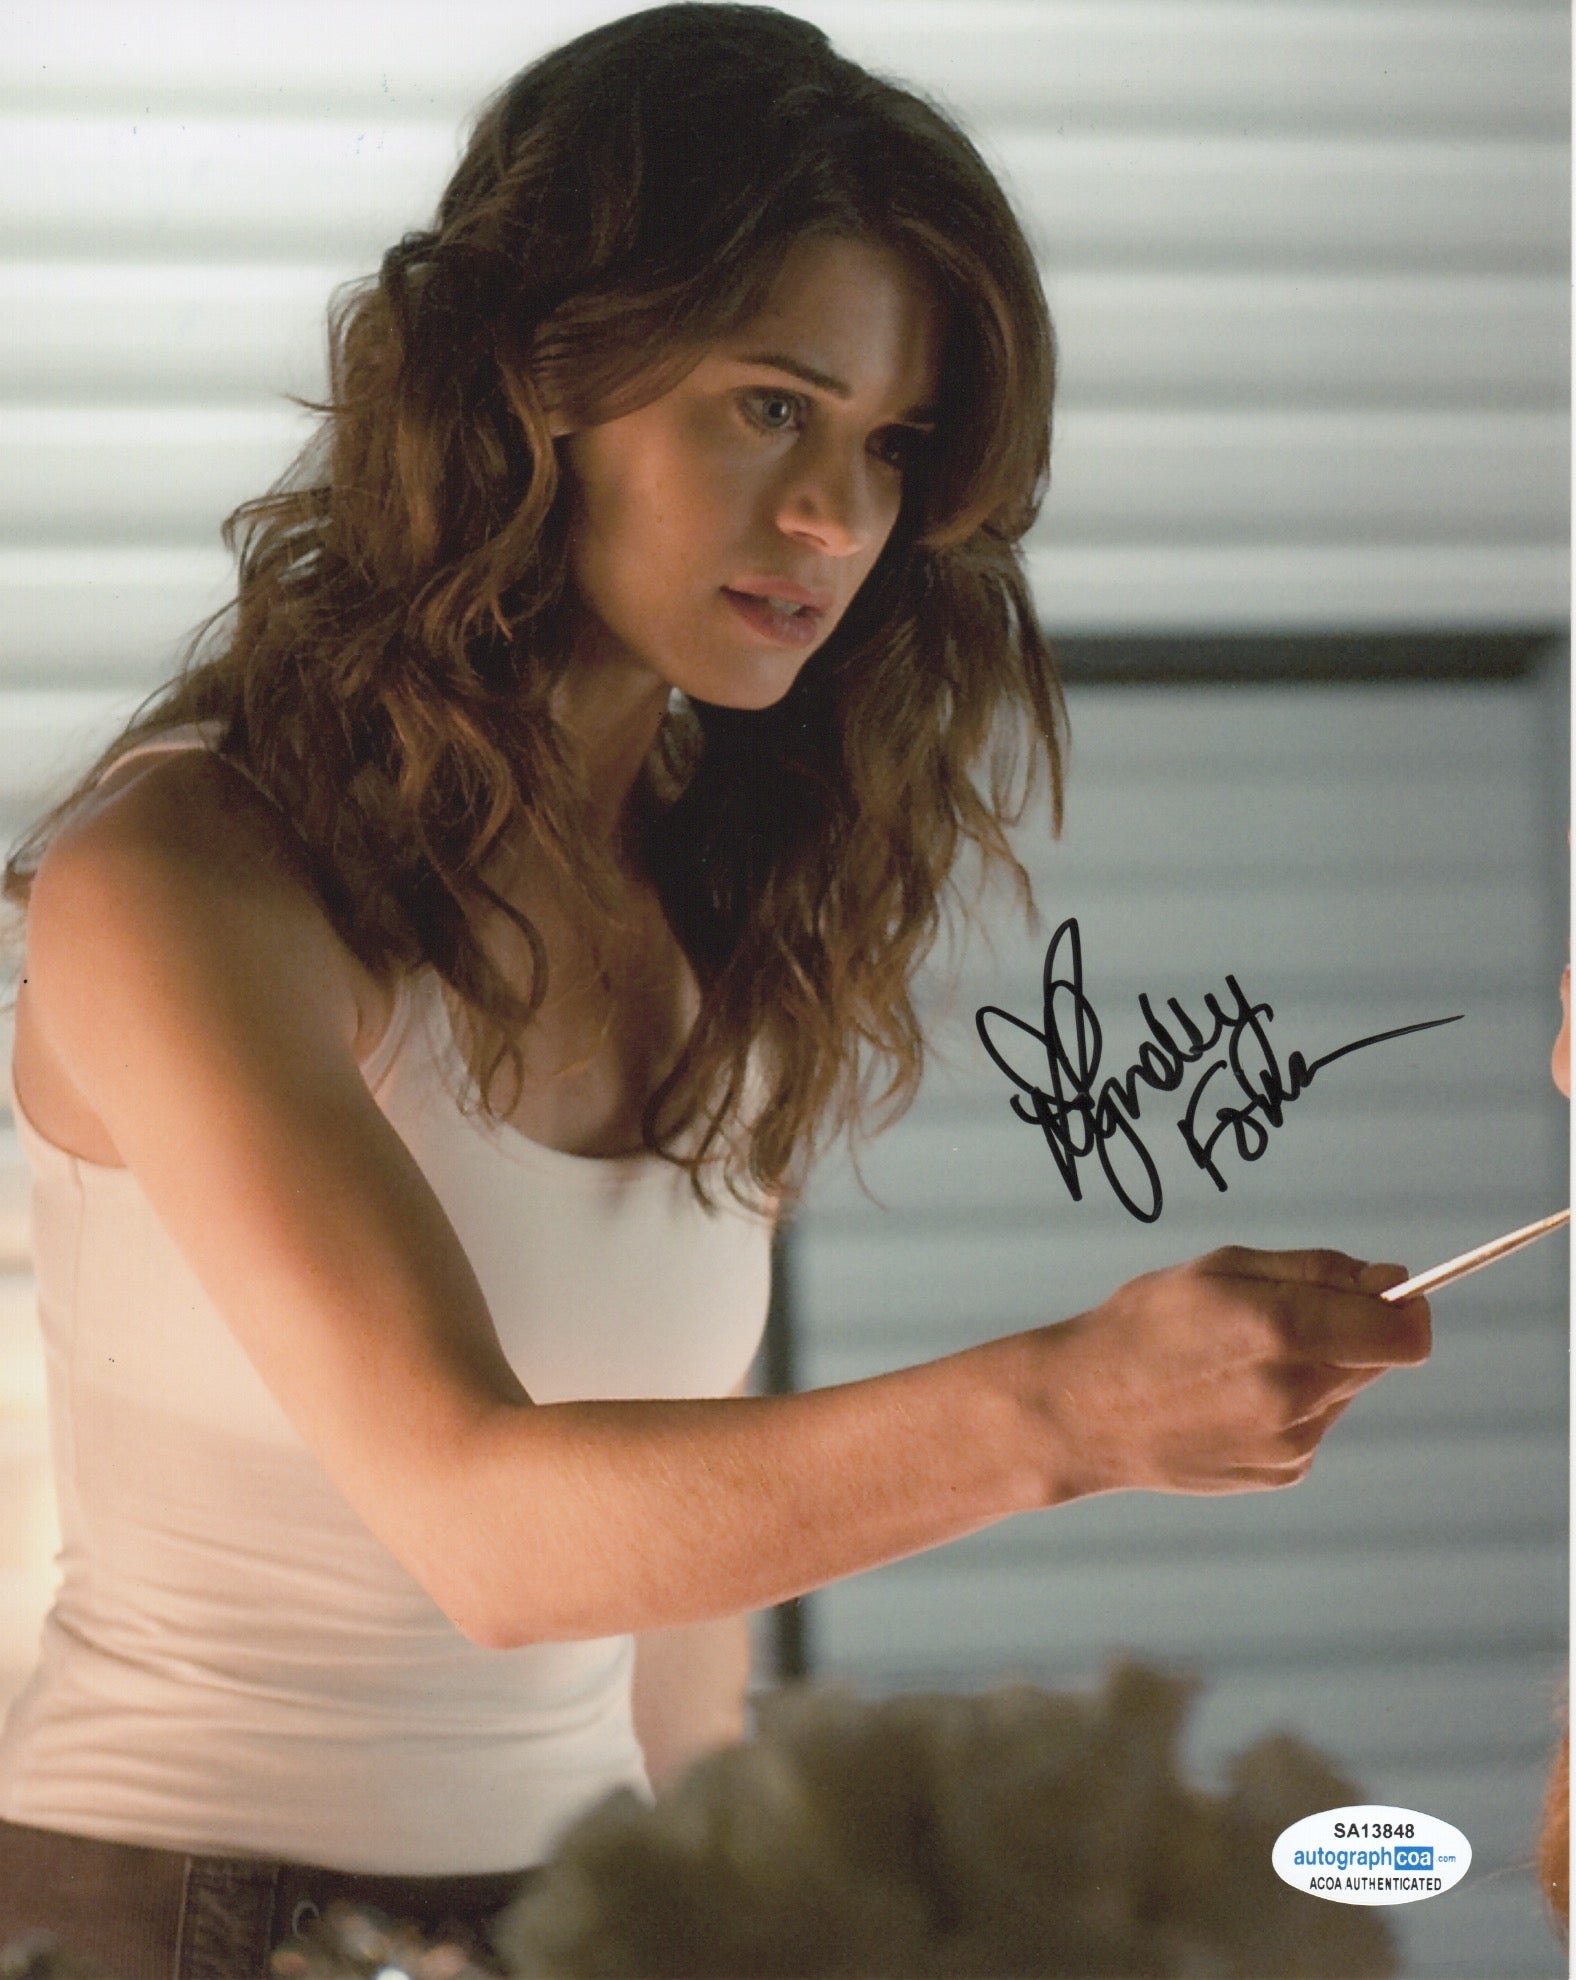 Lyndsy Fonseca Sexy Nikita Signed Autograph 8x10 Photo #3 - Outlaw Hobbies Authentic Autographs